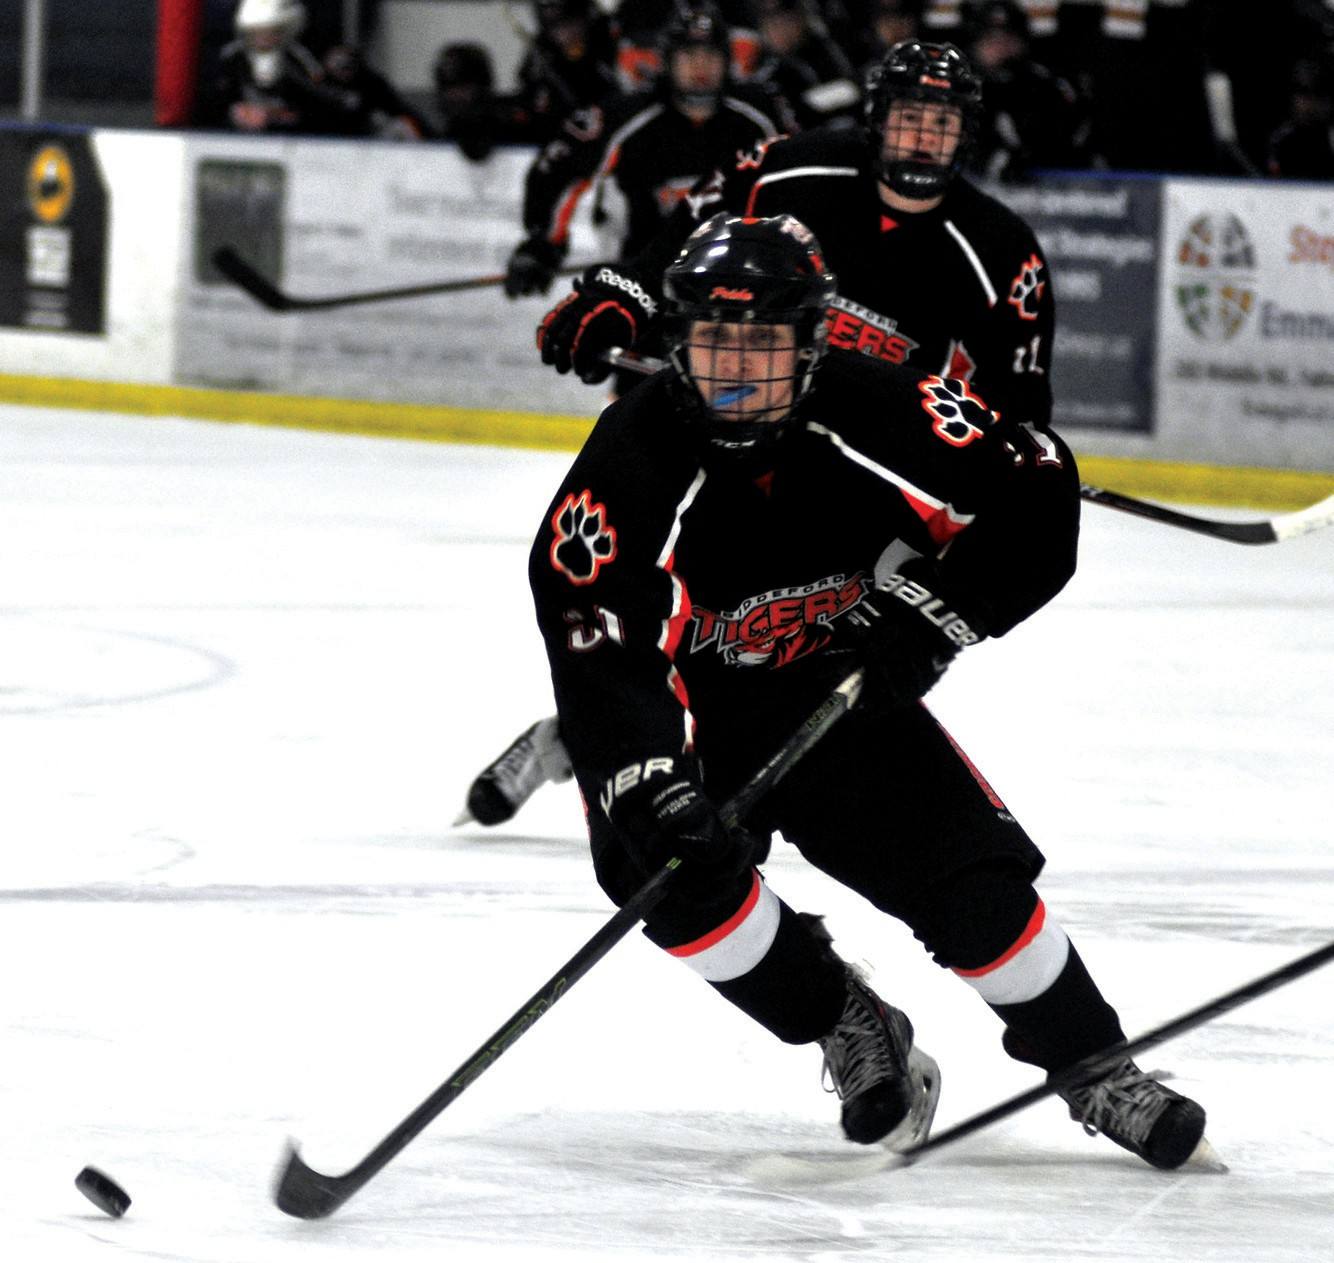 Biddeford's Rick Ruck tracks down the puck in the third period Monday against Cheverus in the Class A South playoffs.